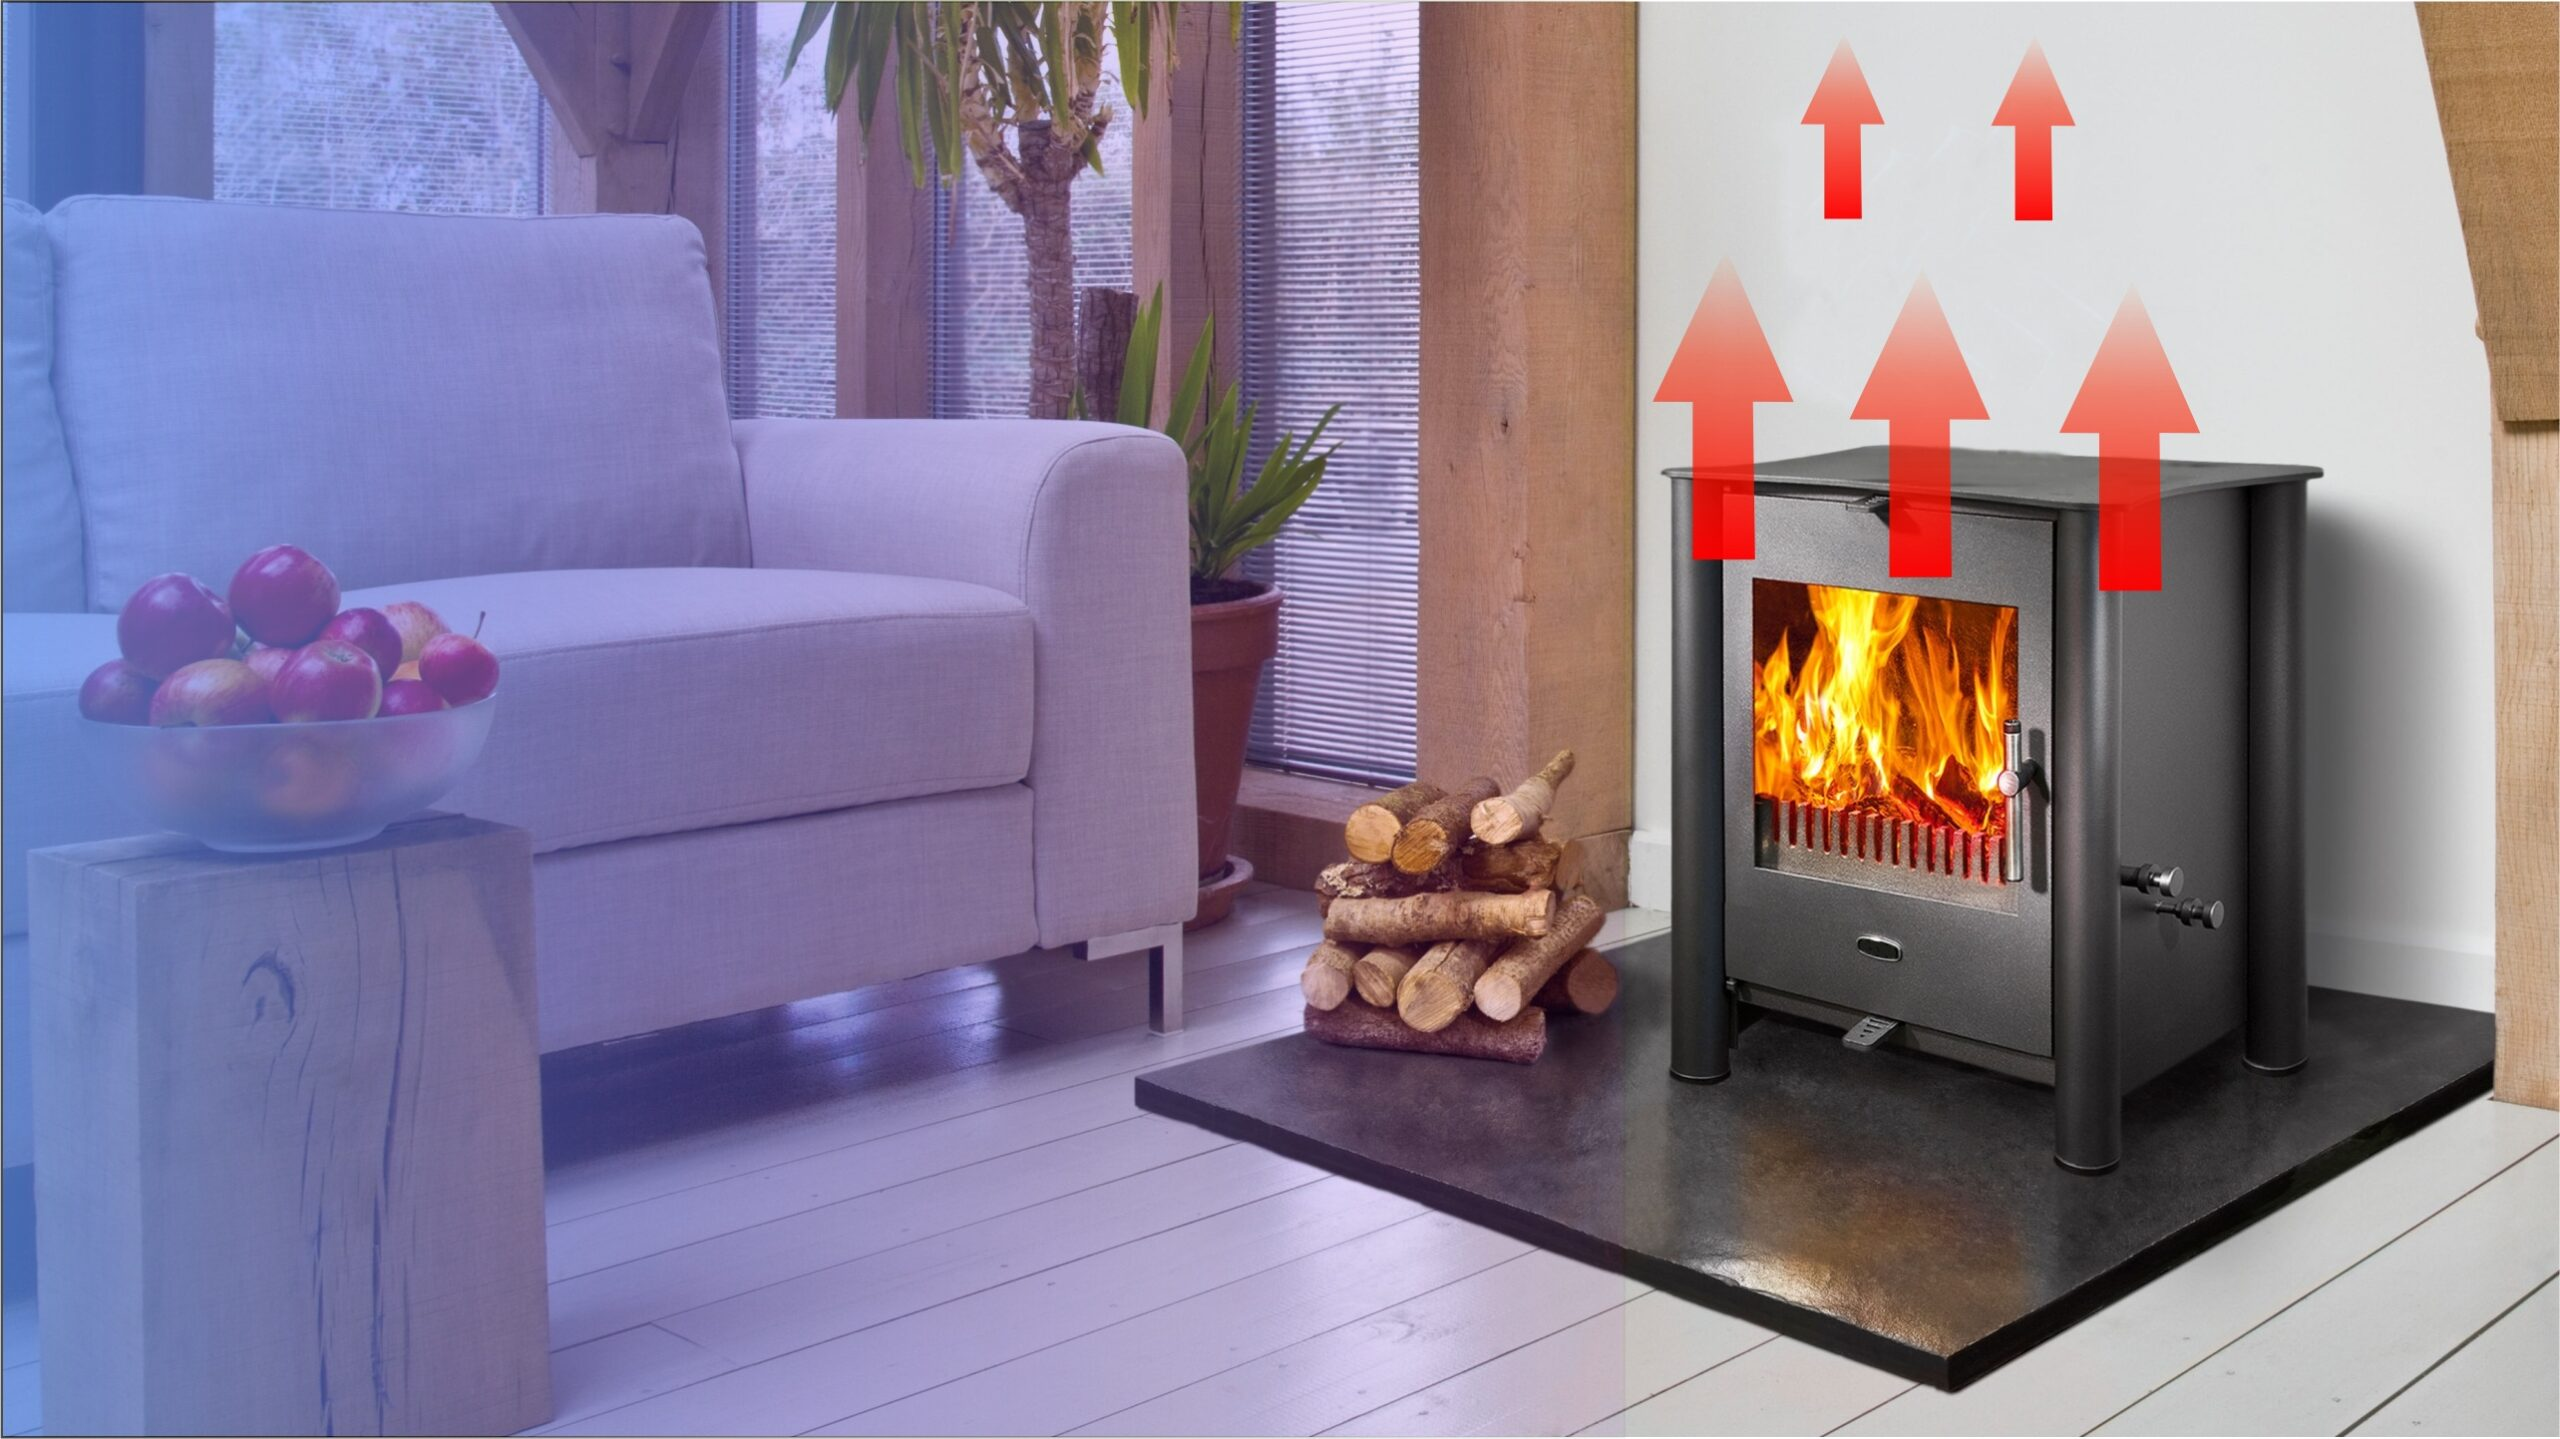 In the image above, you can see how the heat rises directly above the stove without a stove fan - leaving the rest of the room unheated.